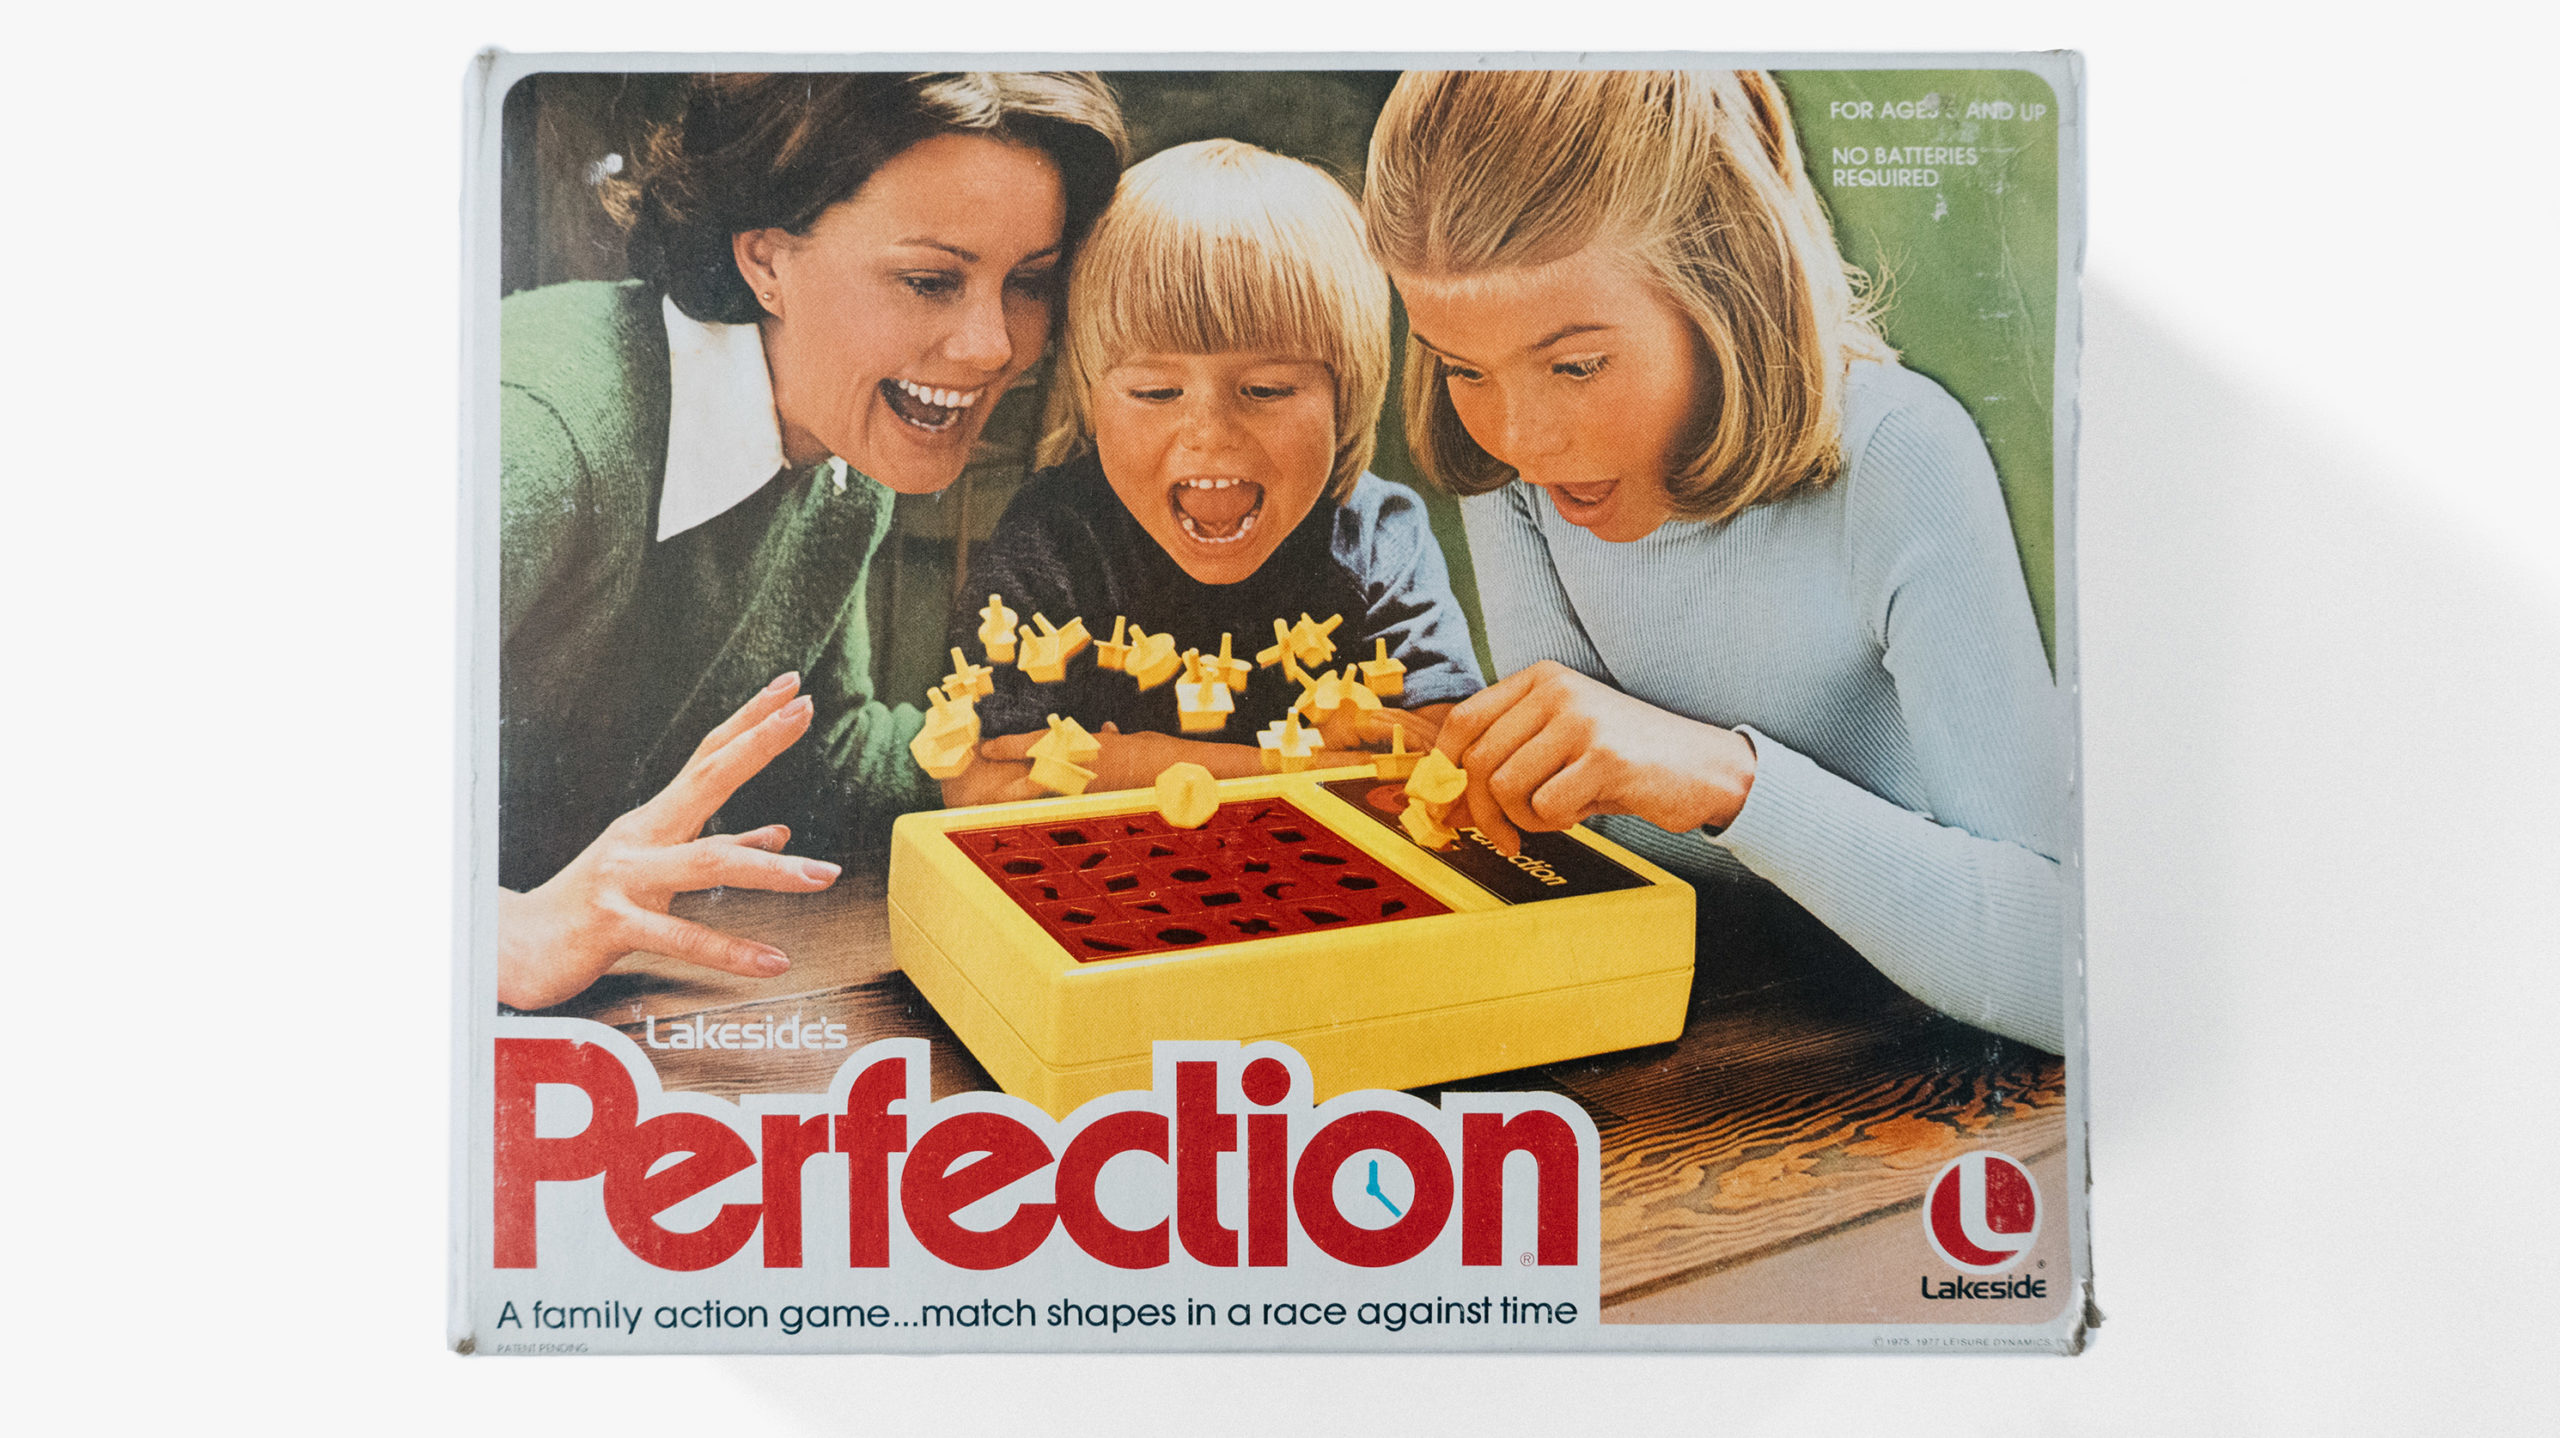 Perfection game box